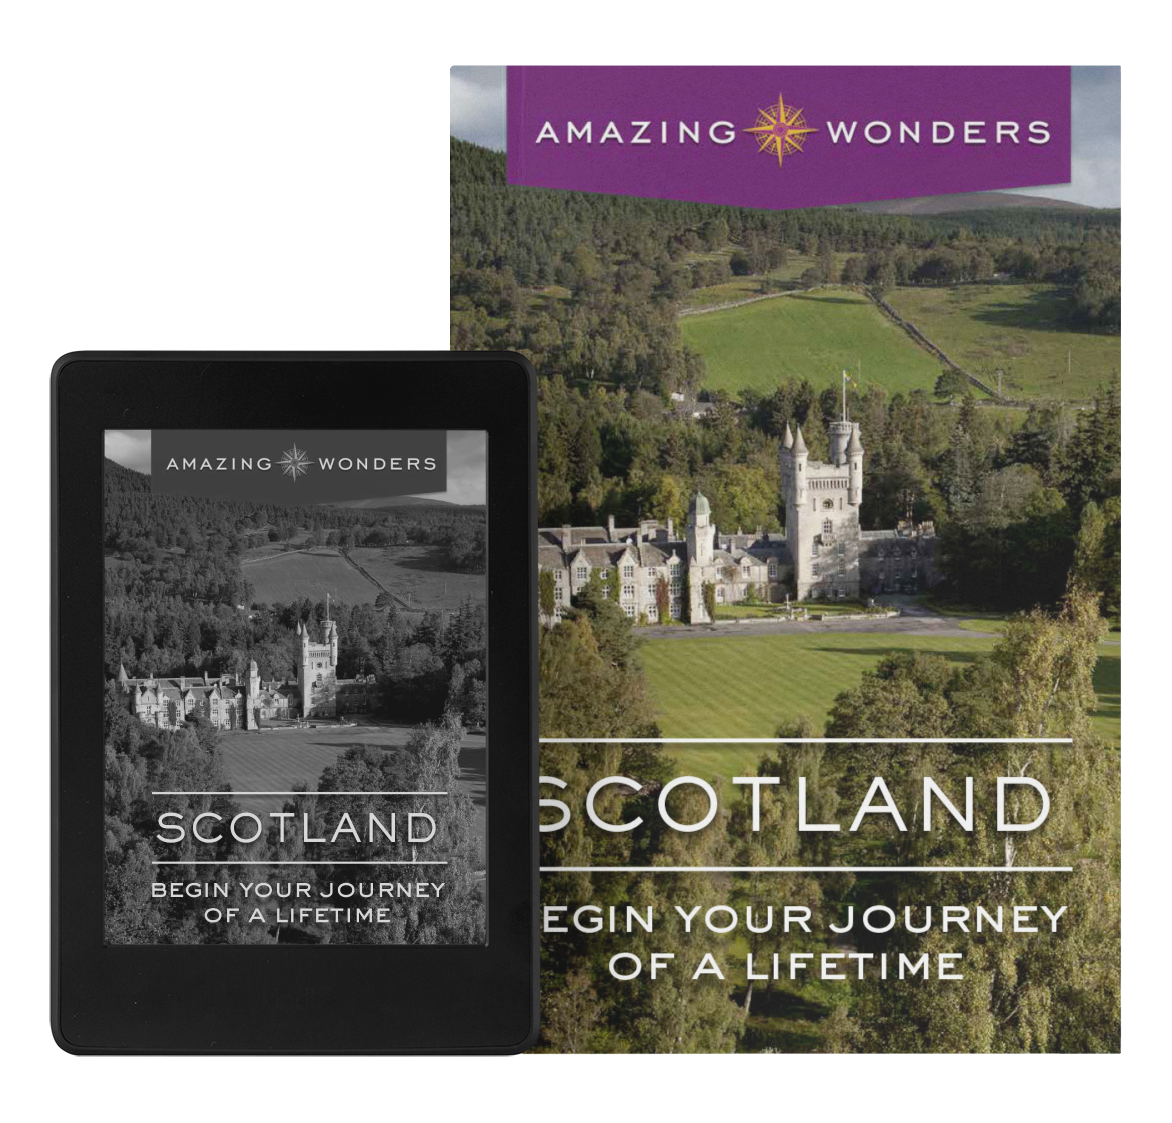 Amazing Wonders scotland ebook